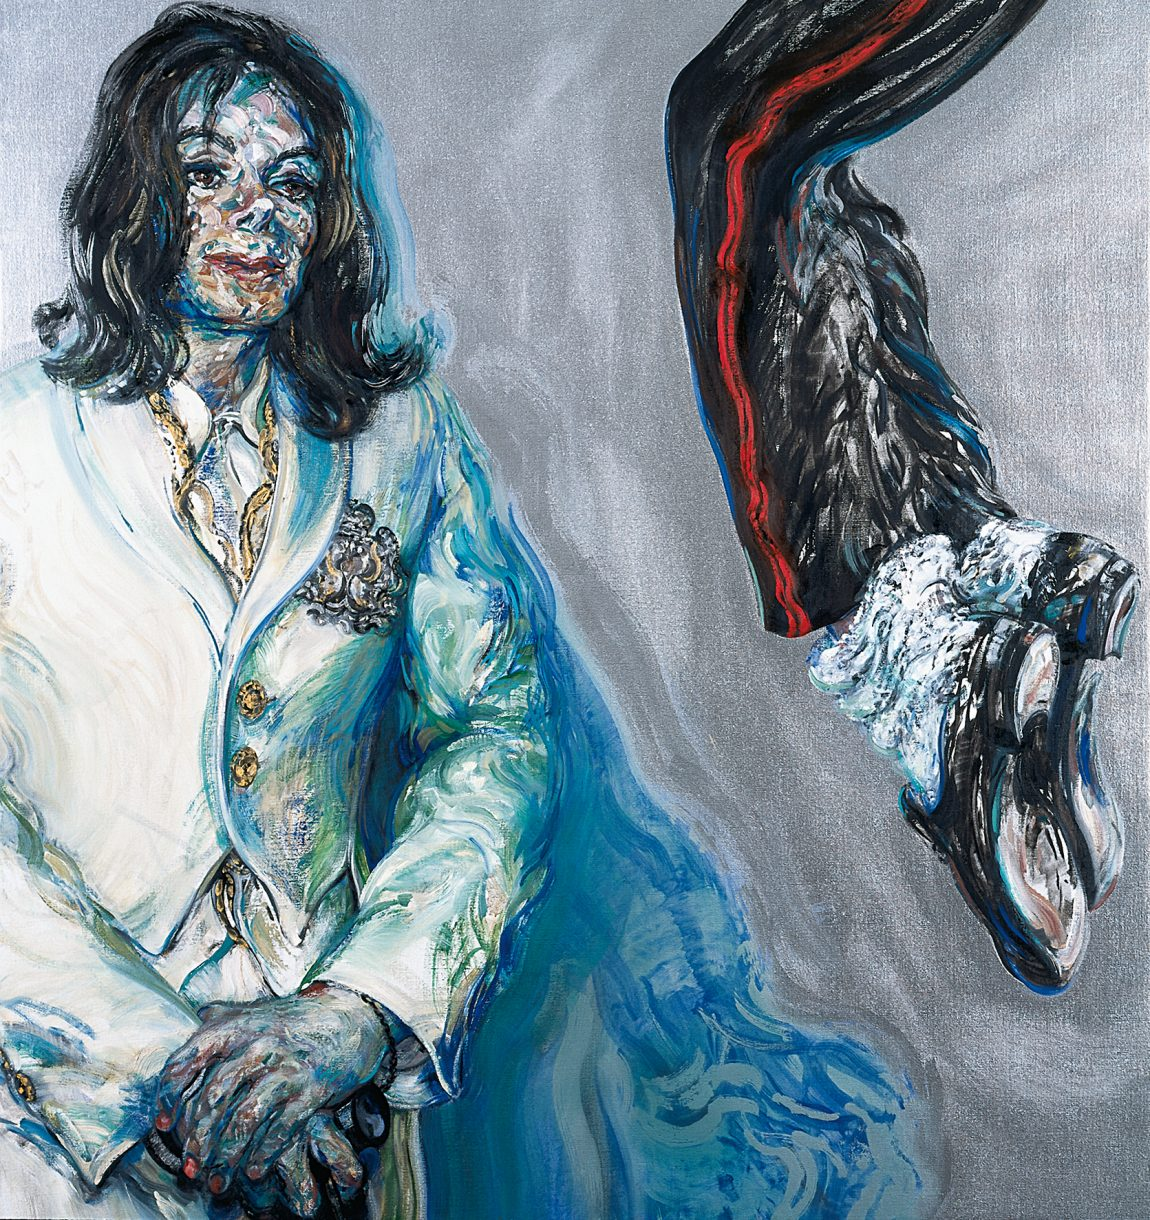 Michael Jackson, On the Wall, King of Pop, National Portrait Gallery, London, Bundeskunsthalle Bonn,